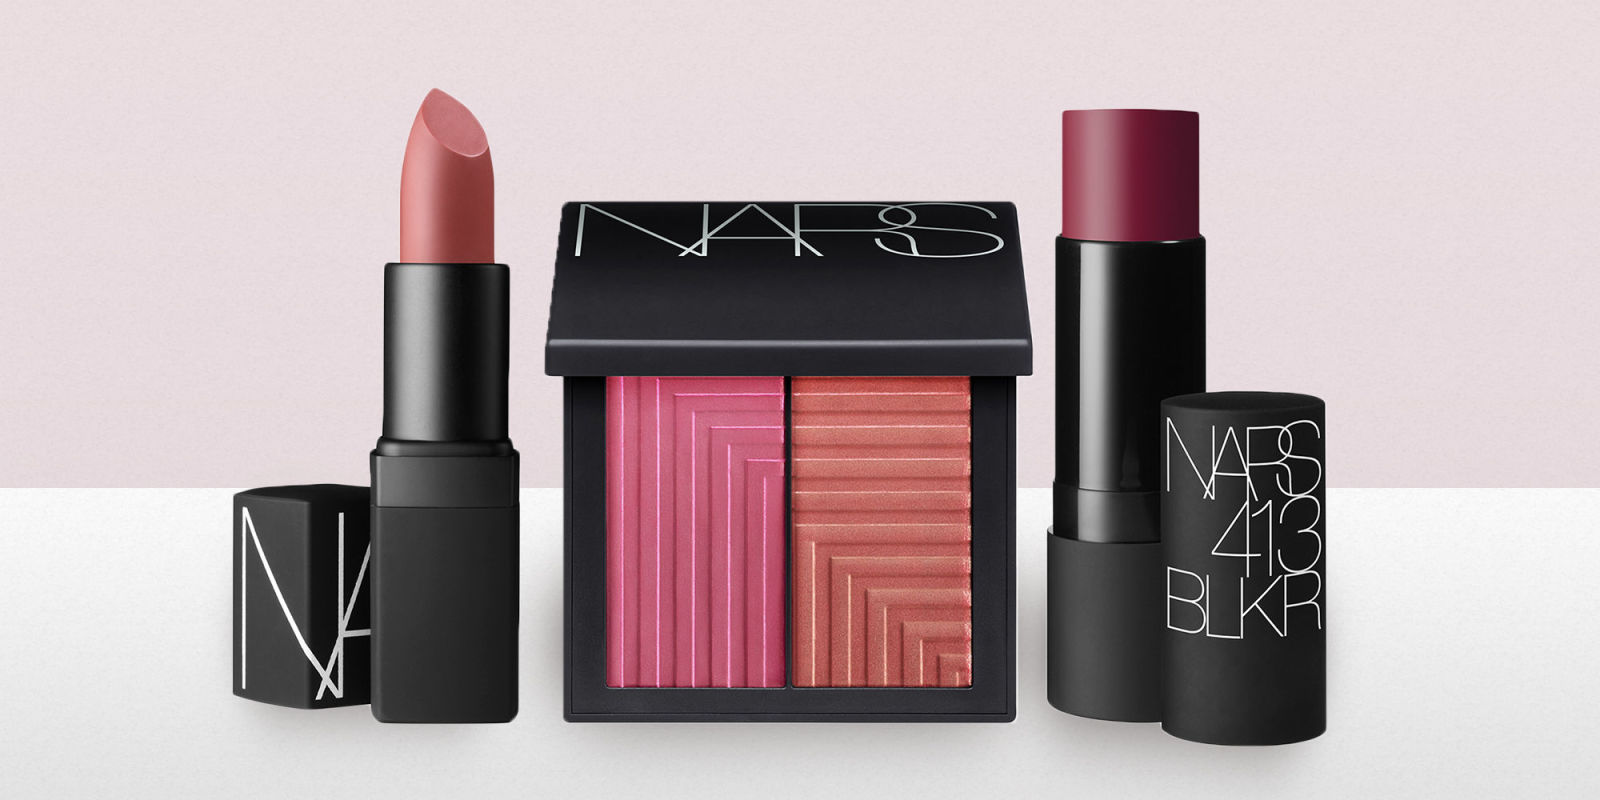 2017 Best NARS Makeup Products - 10 Top Selling NARS Cosmetics ...